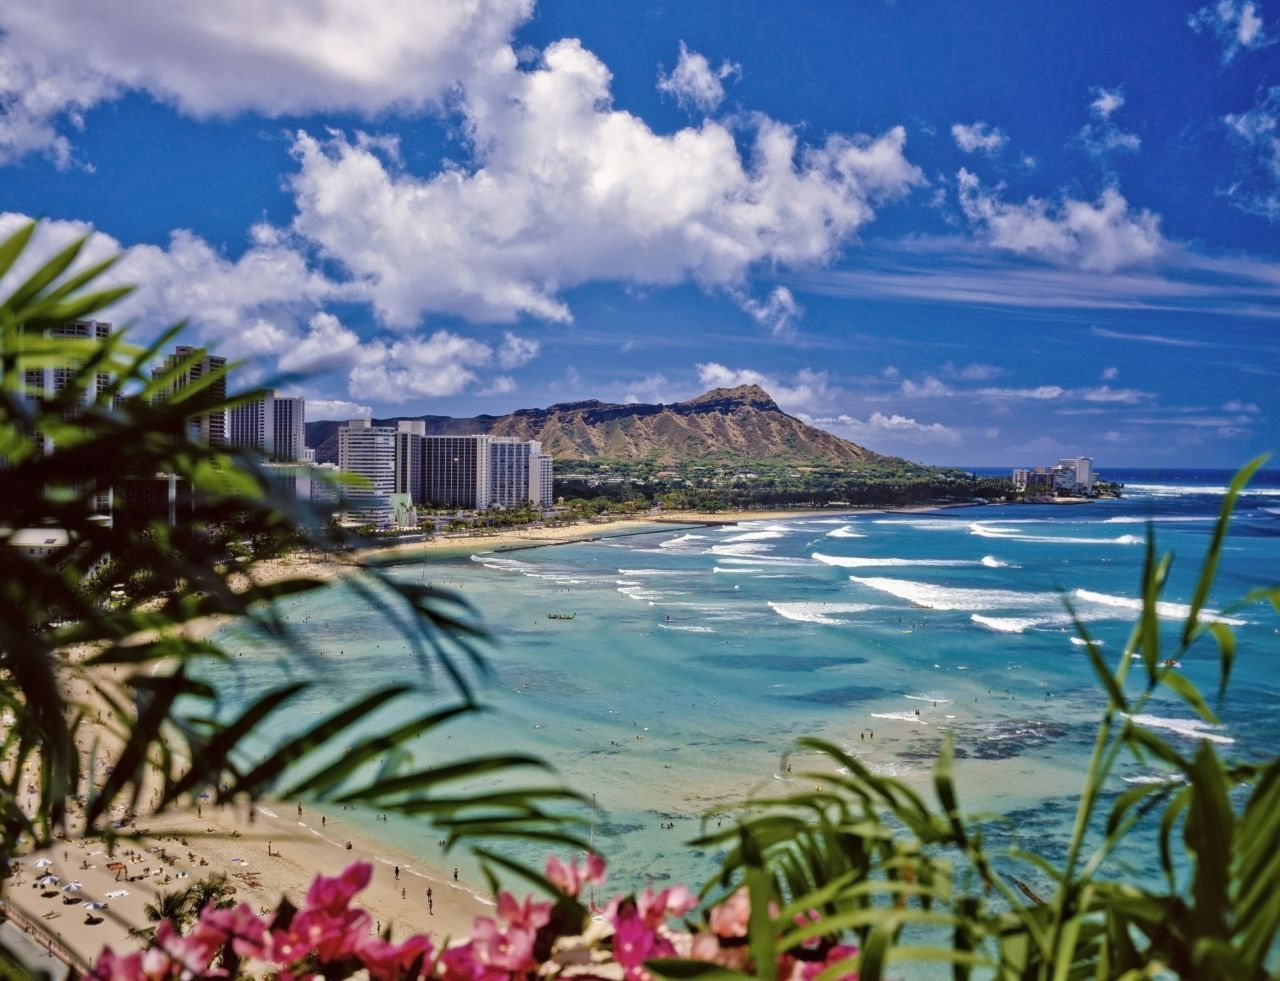 Waikiki Beach, Hawaii; photo from Thinkstock